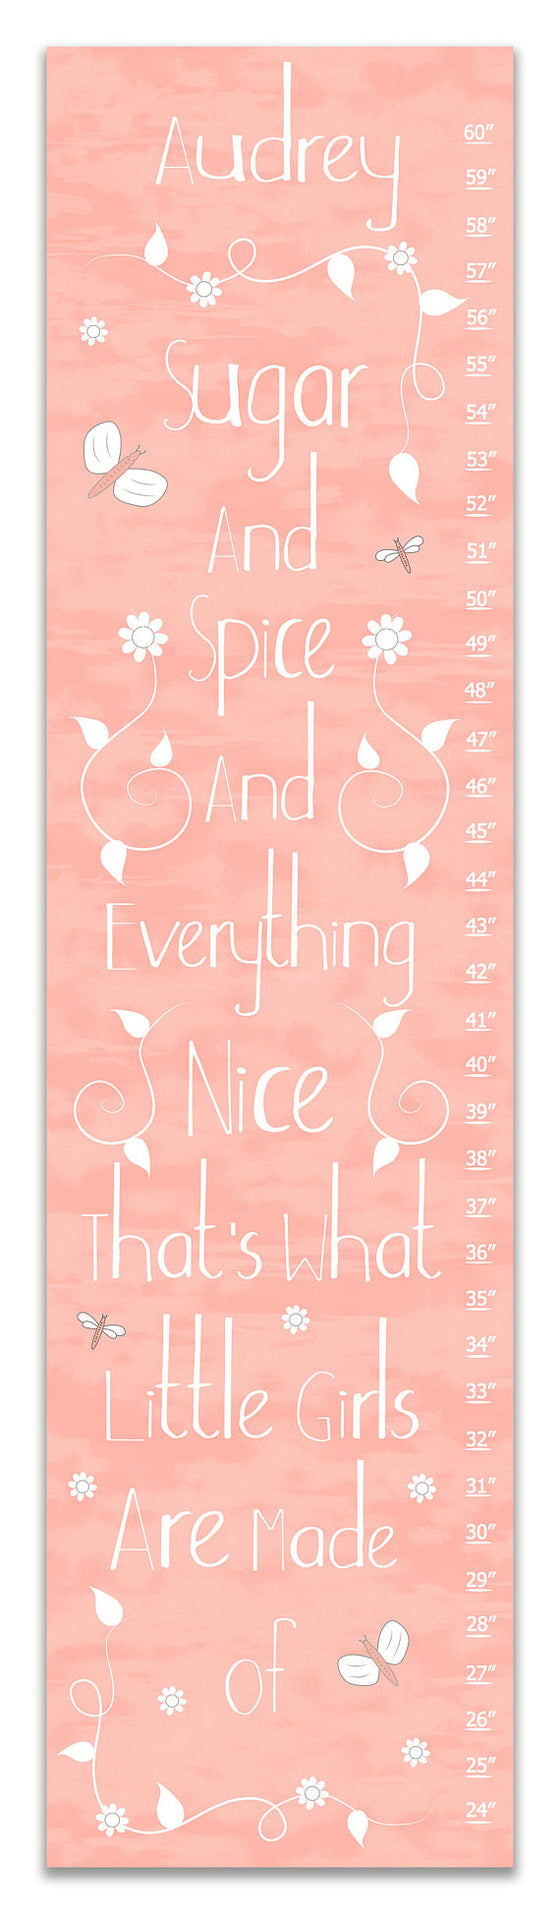 Sugar and Spice Pink Personalized Growth Chart - Nursery Decor